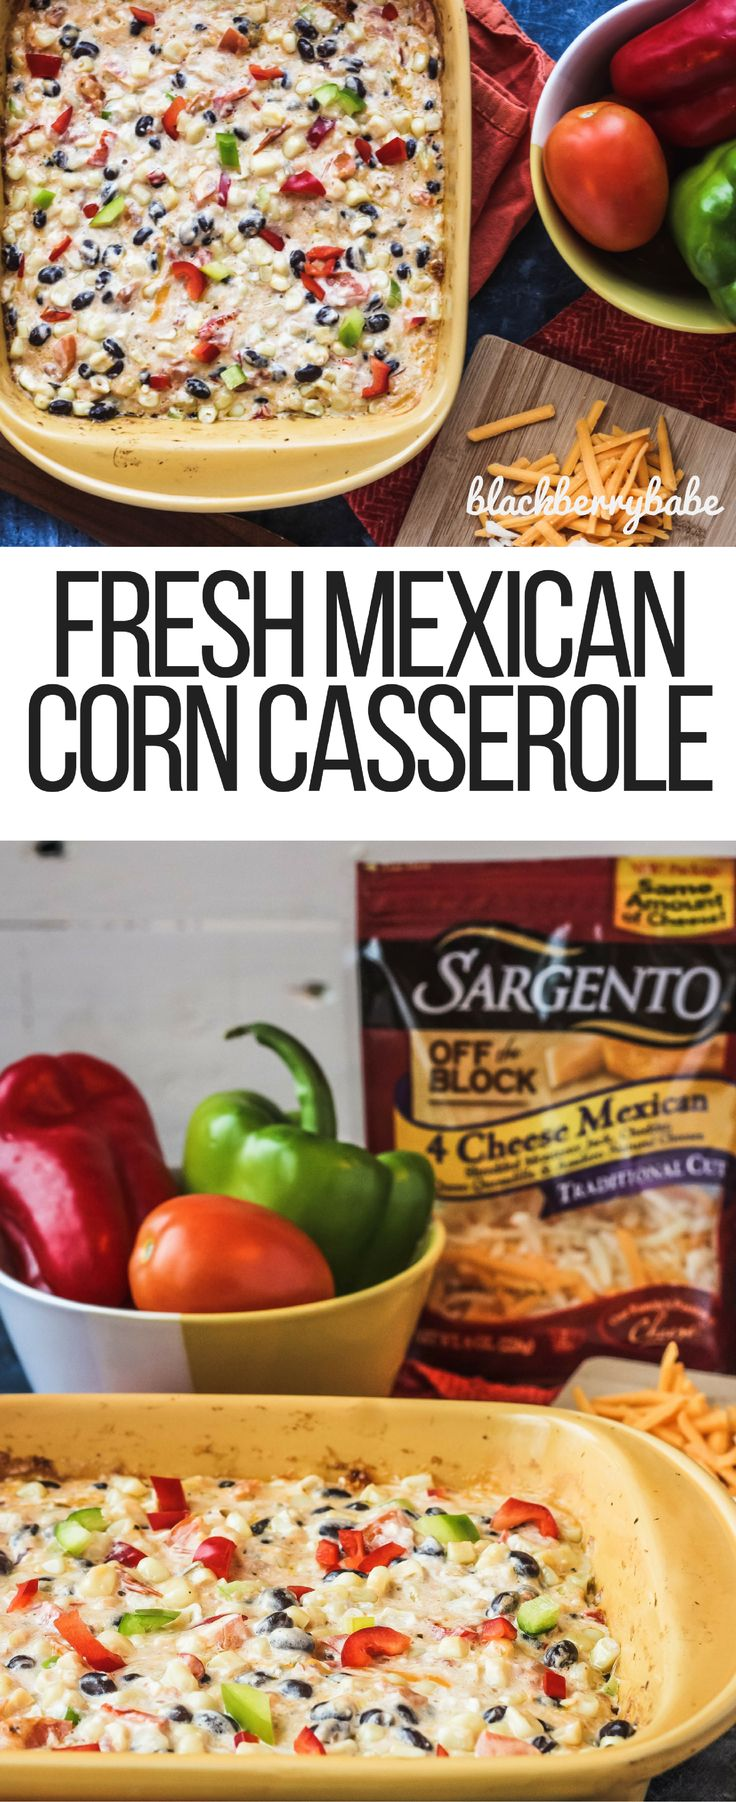 #ad Fresh Mexican Corn Casserole made with @SargentoCheese |Mexican Corn Bake| Cheesy Corn| Cheesy Side Dish | Cheesy Corn Casserole| Cream Cheese Corn Casserole | Corn Side Dish | Baked Corn| AD  #RealCheesePeople #IC